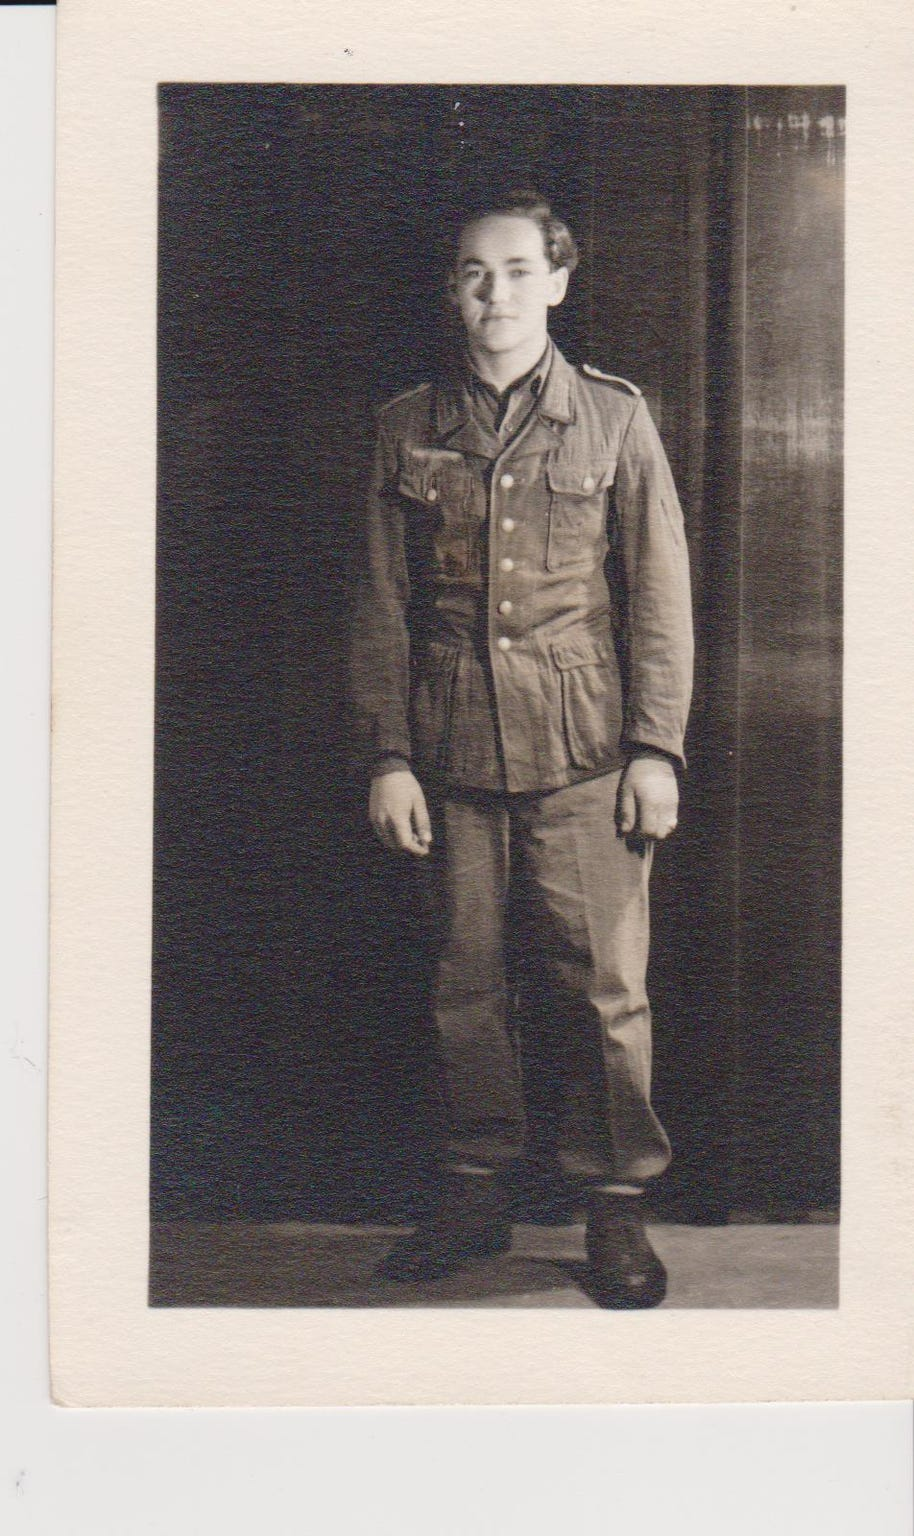 A photo of Kurt Pechmann when he was a German POW in Camp Hartford in 1945